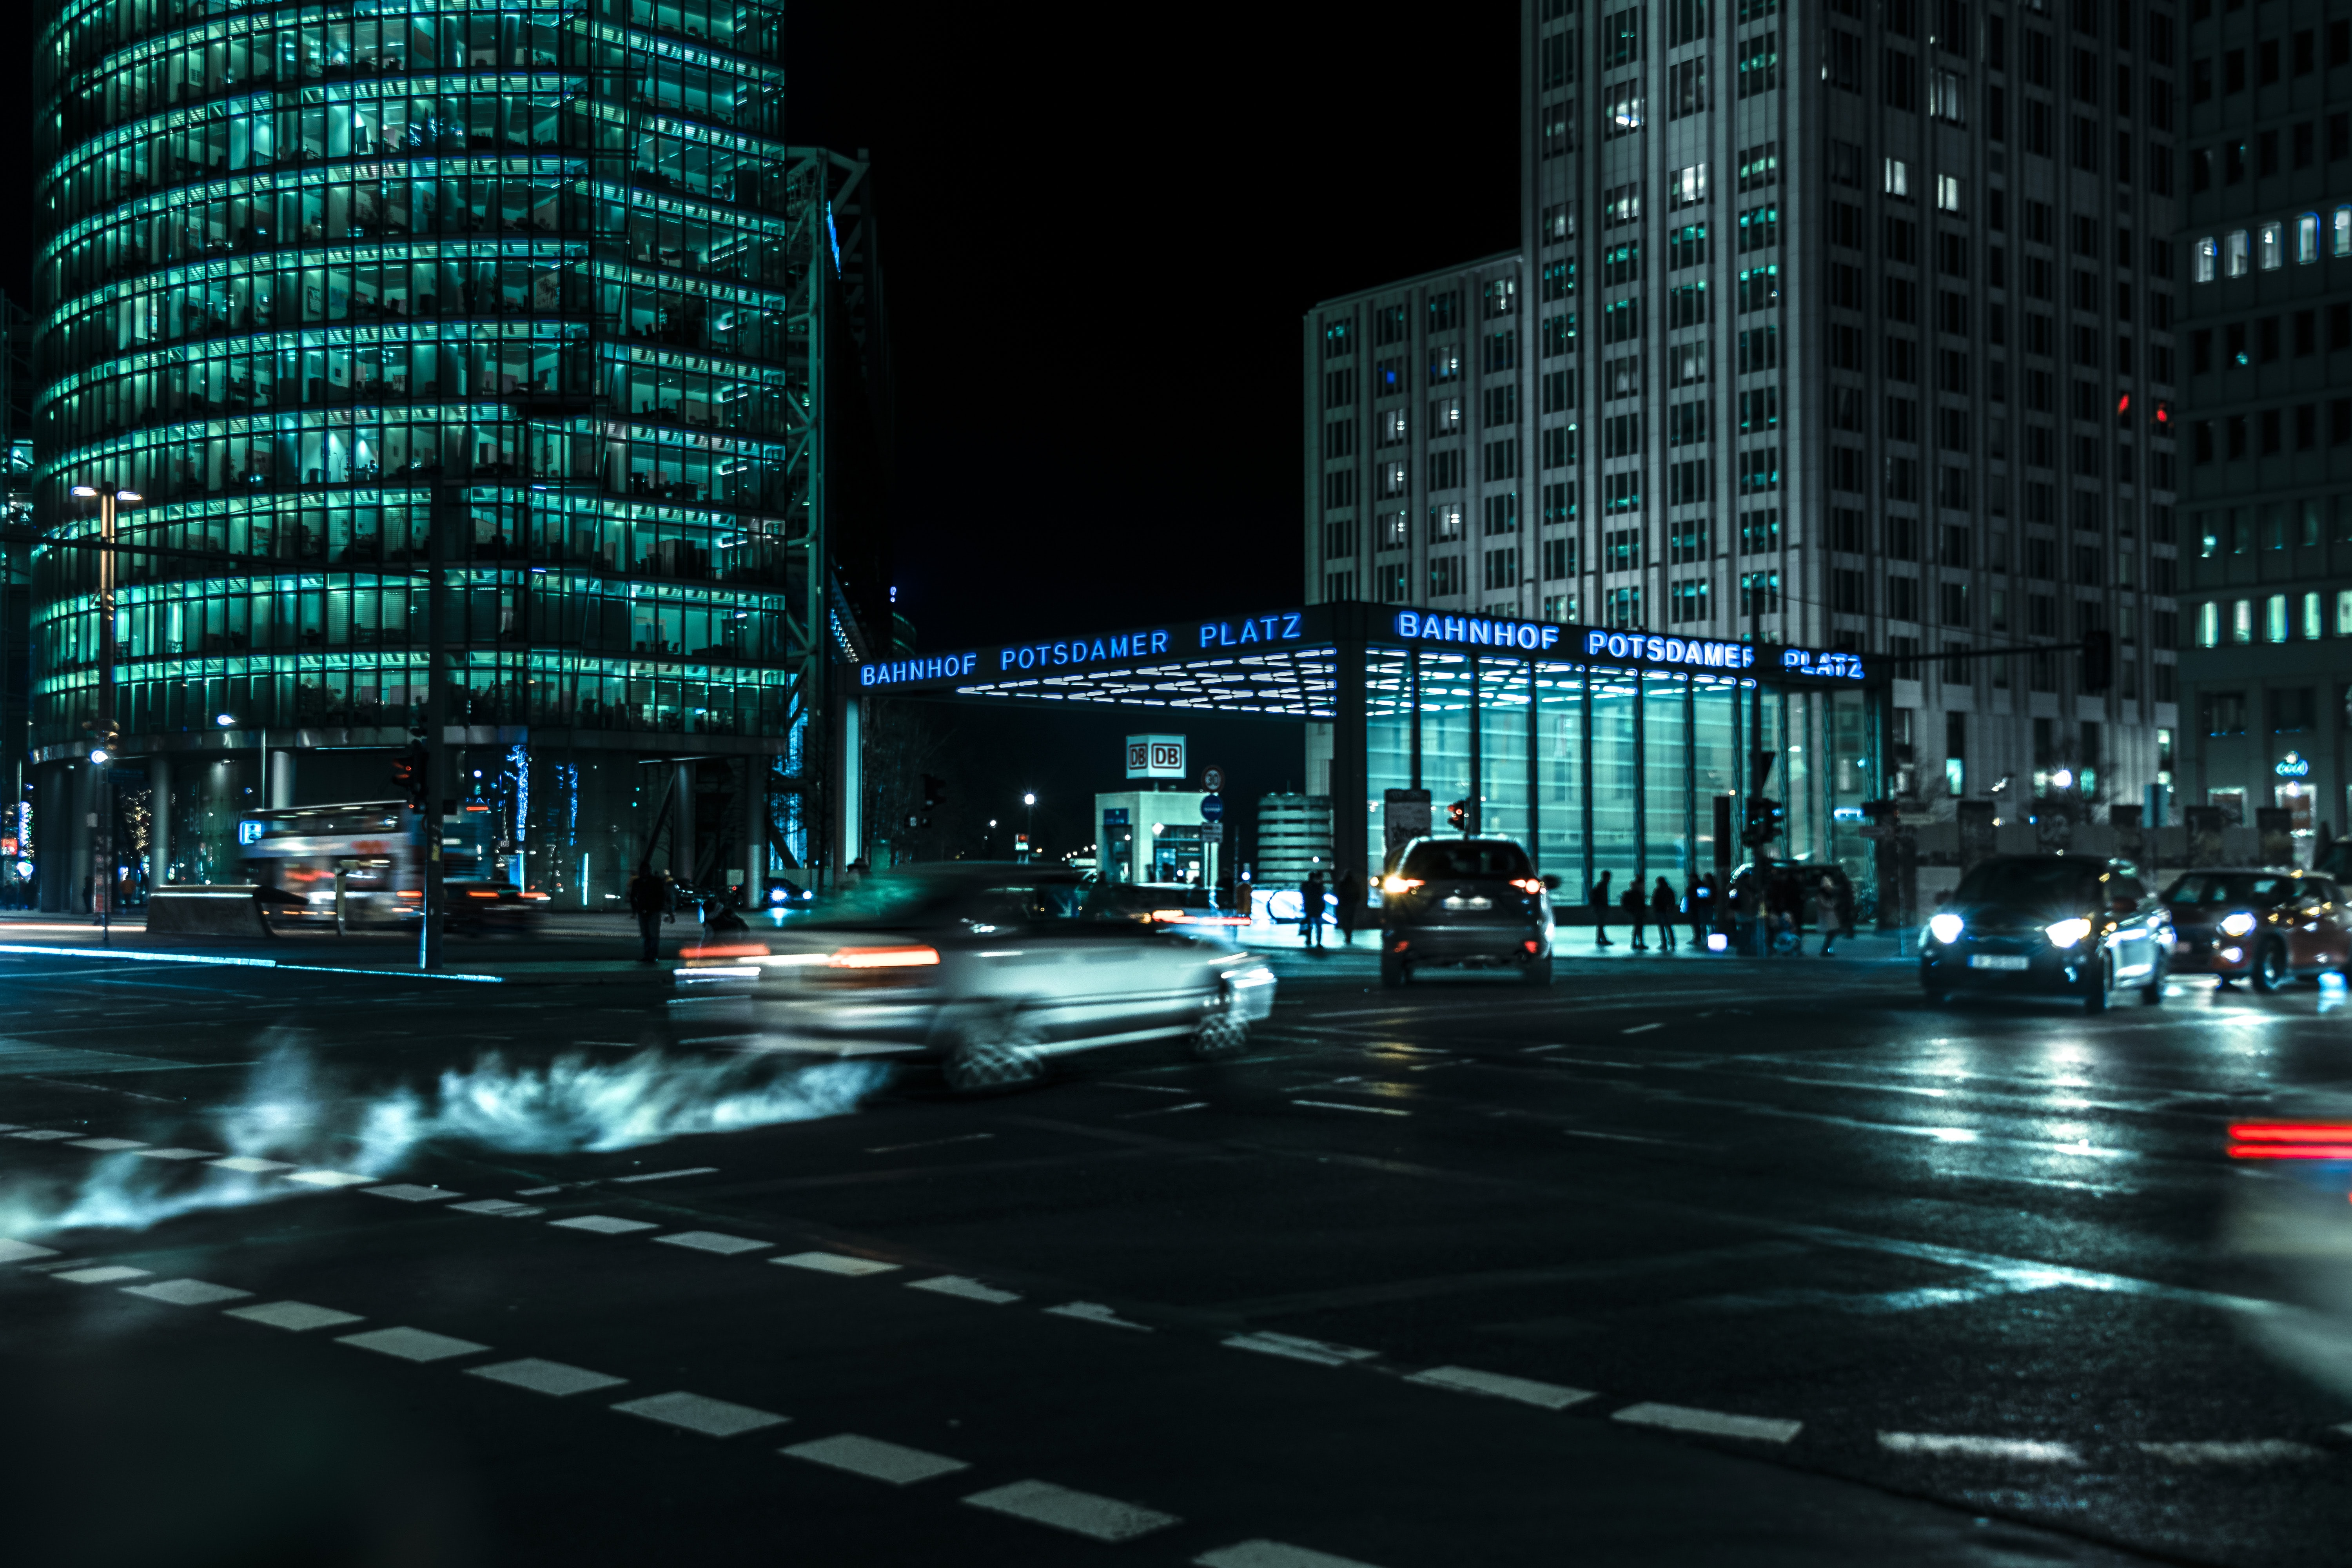 time-lapse photography of vehicles passing on curtain wall high-rise buildings during night